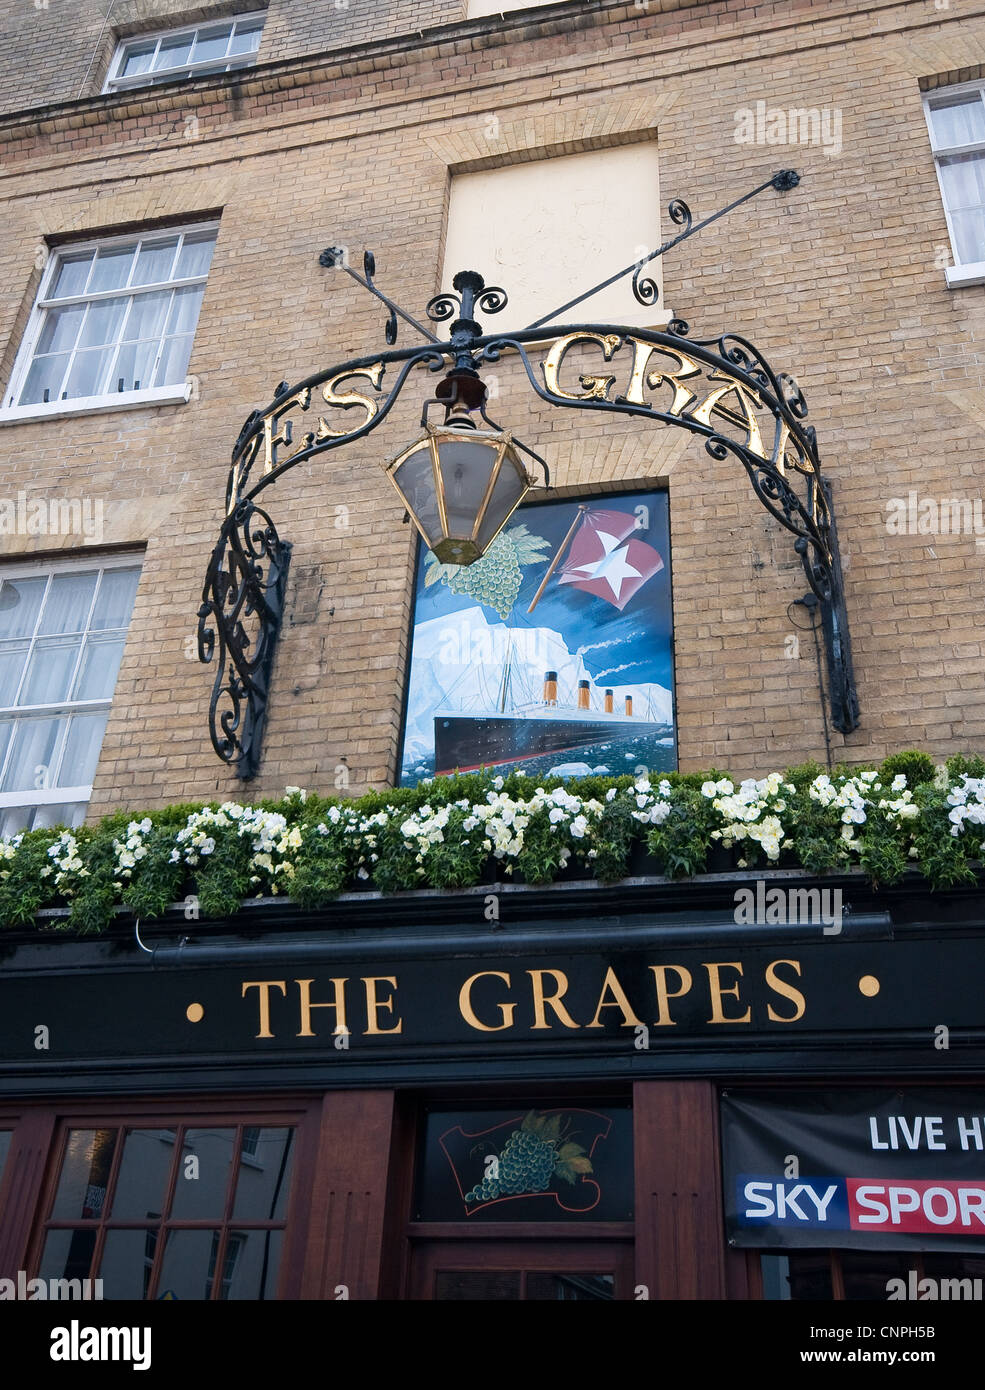 The Grapes Pub on Oxford Street in Southampton, England, UK - Stock Image